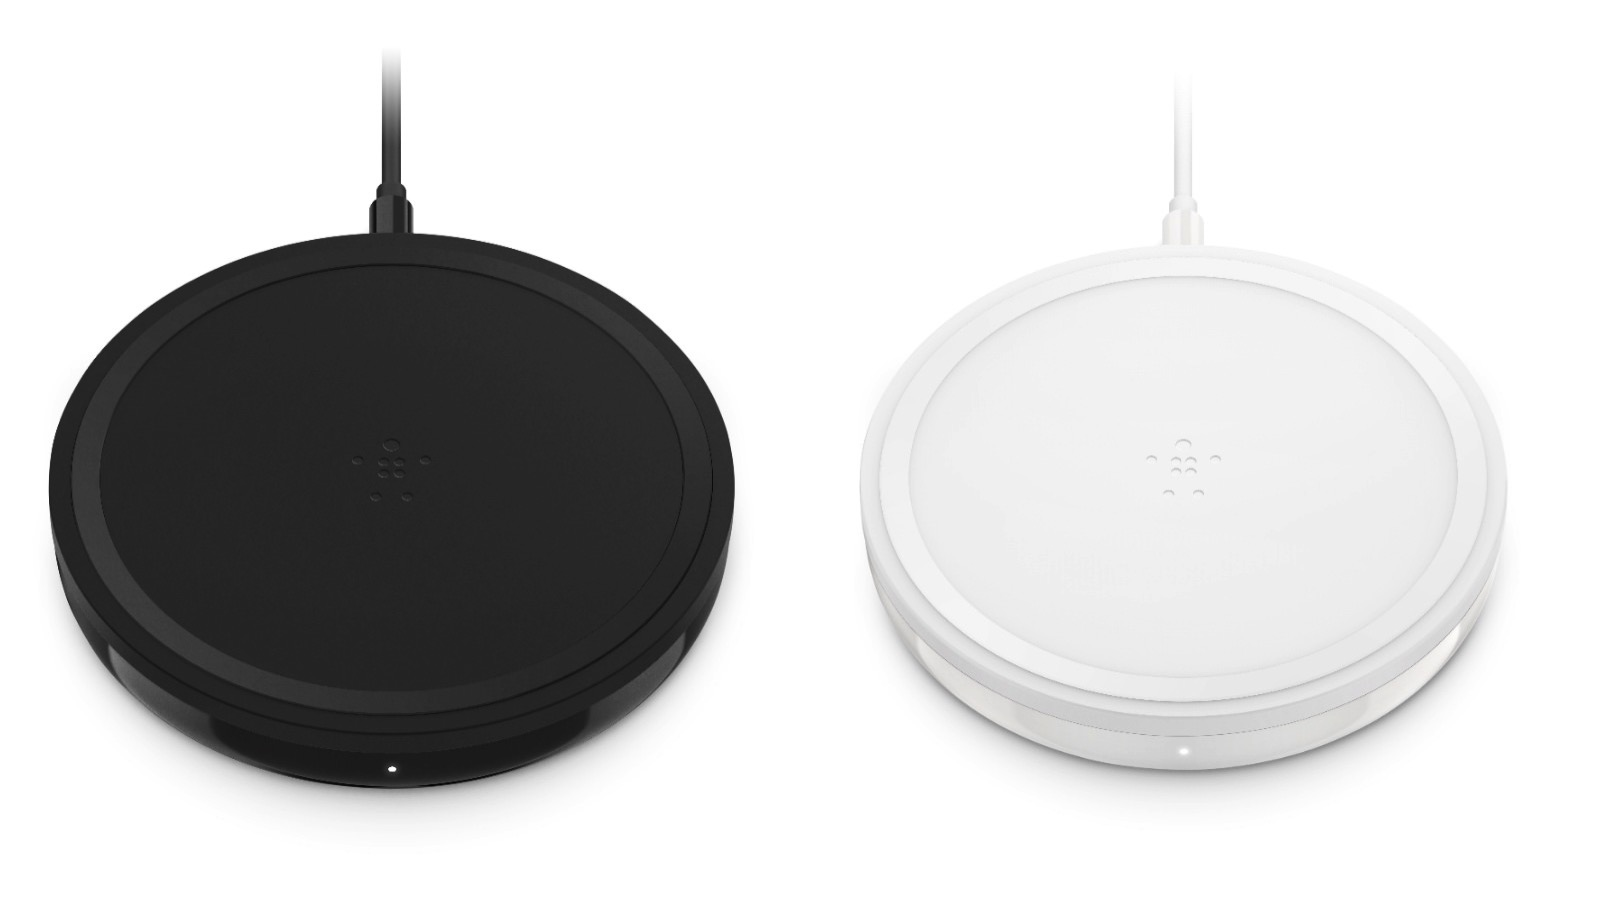 Belkin-New-Wireless-Charger.jpg